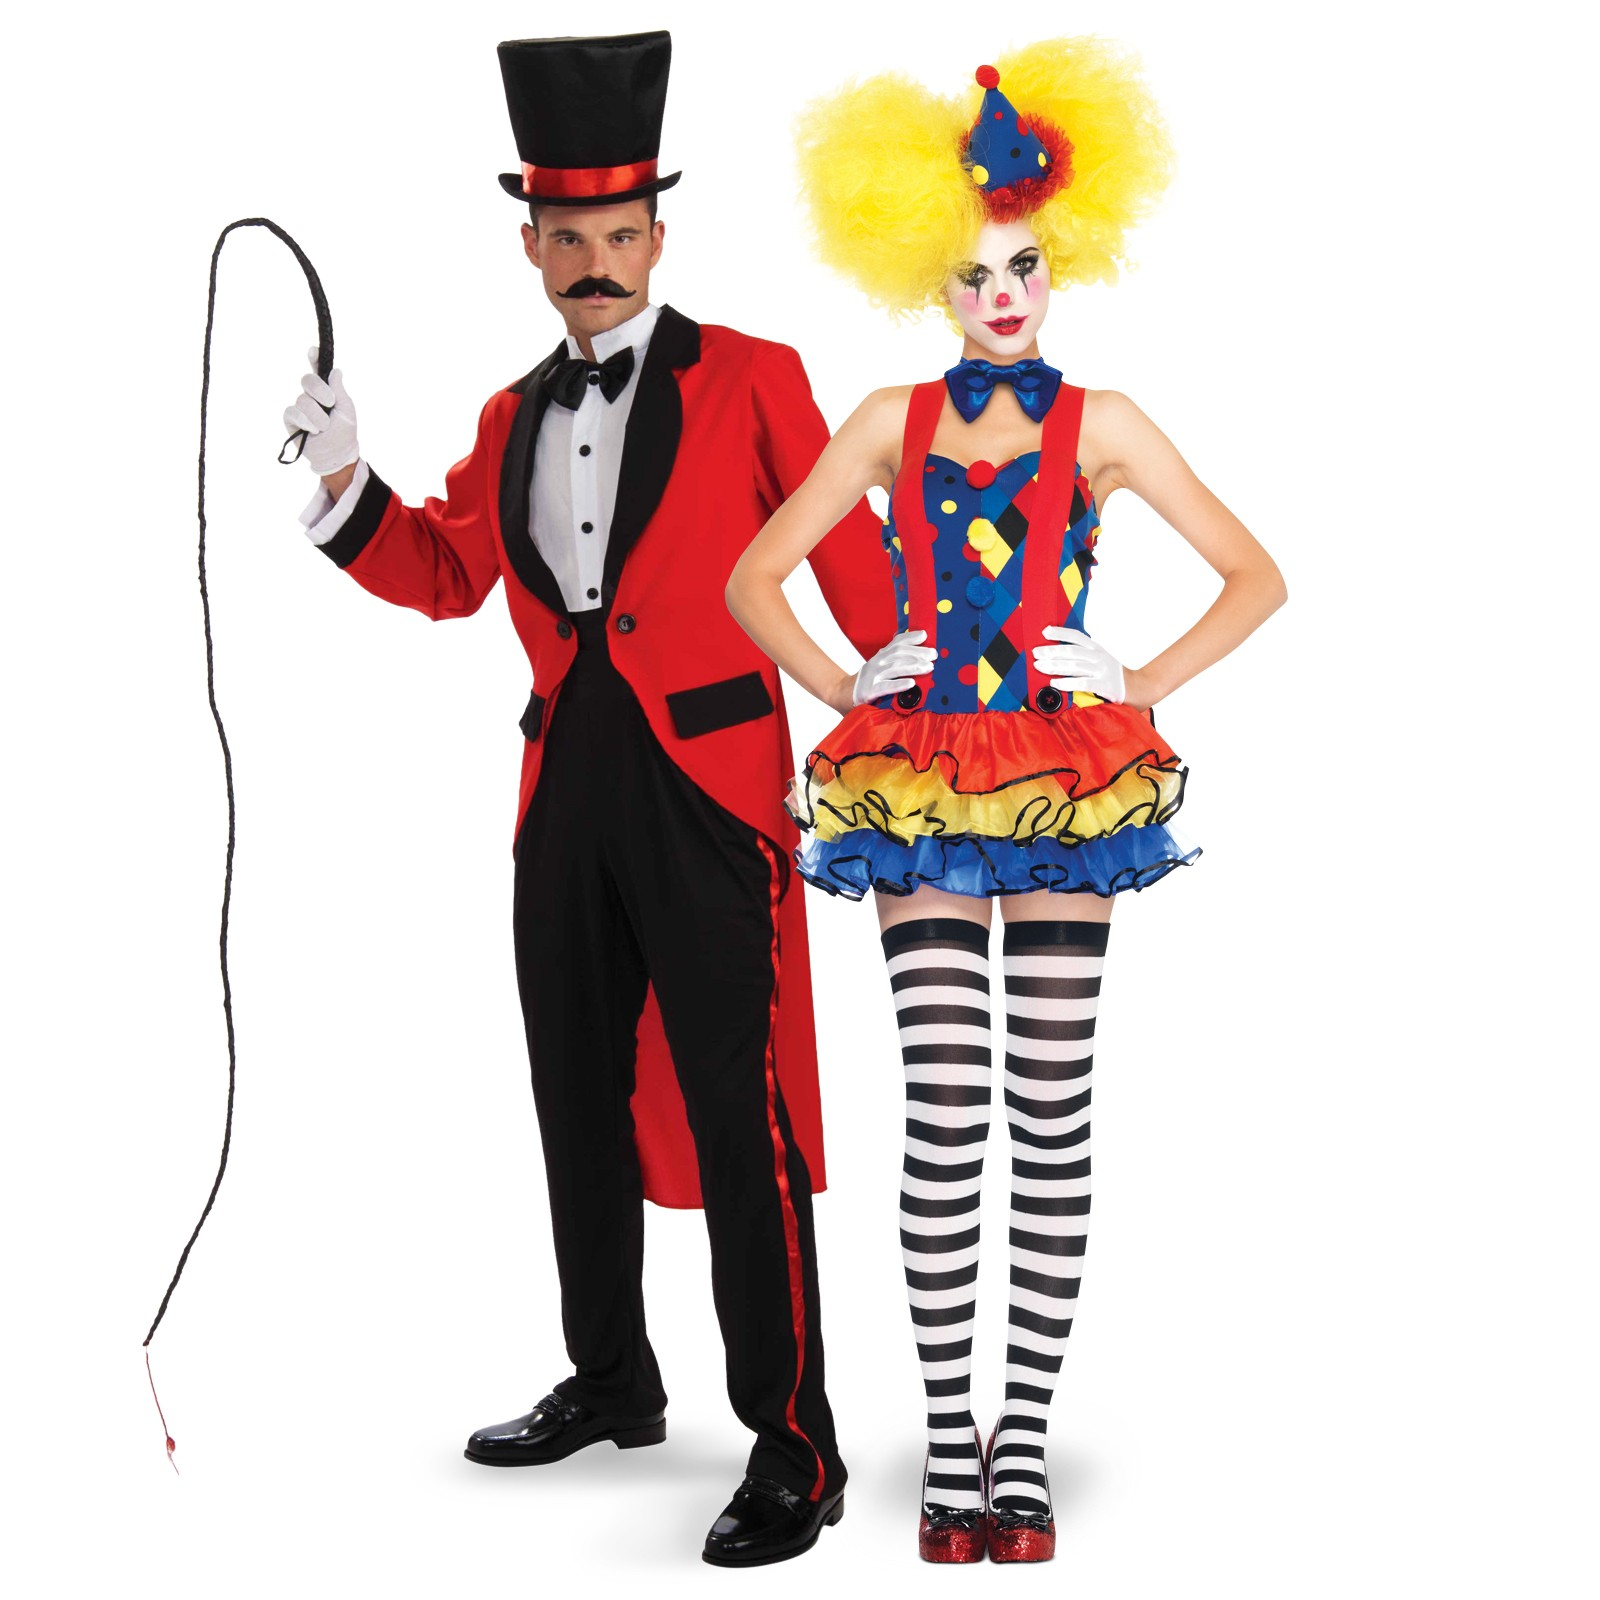 Gallery For Gt Circus Costumes Ideas  sc 1 st  Meningrey & Circus Themed Costume Ideas - Meningrey